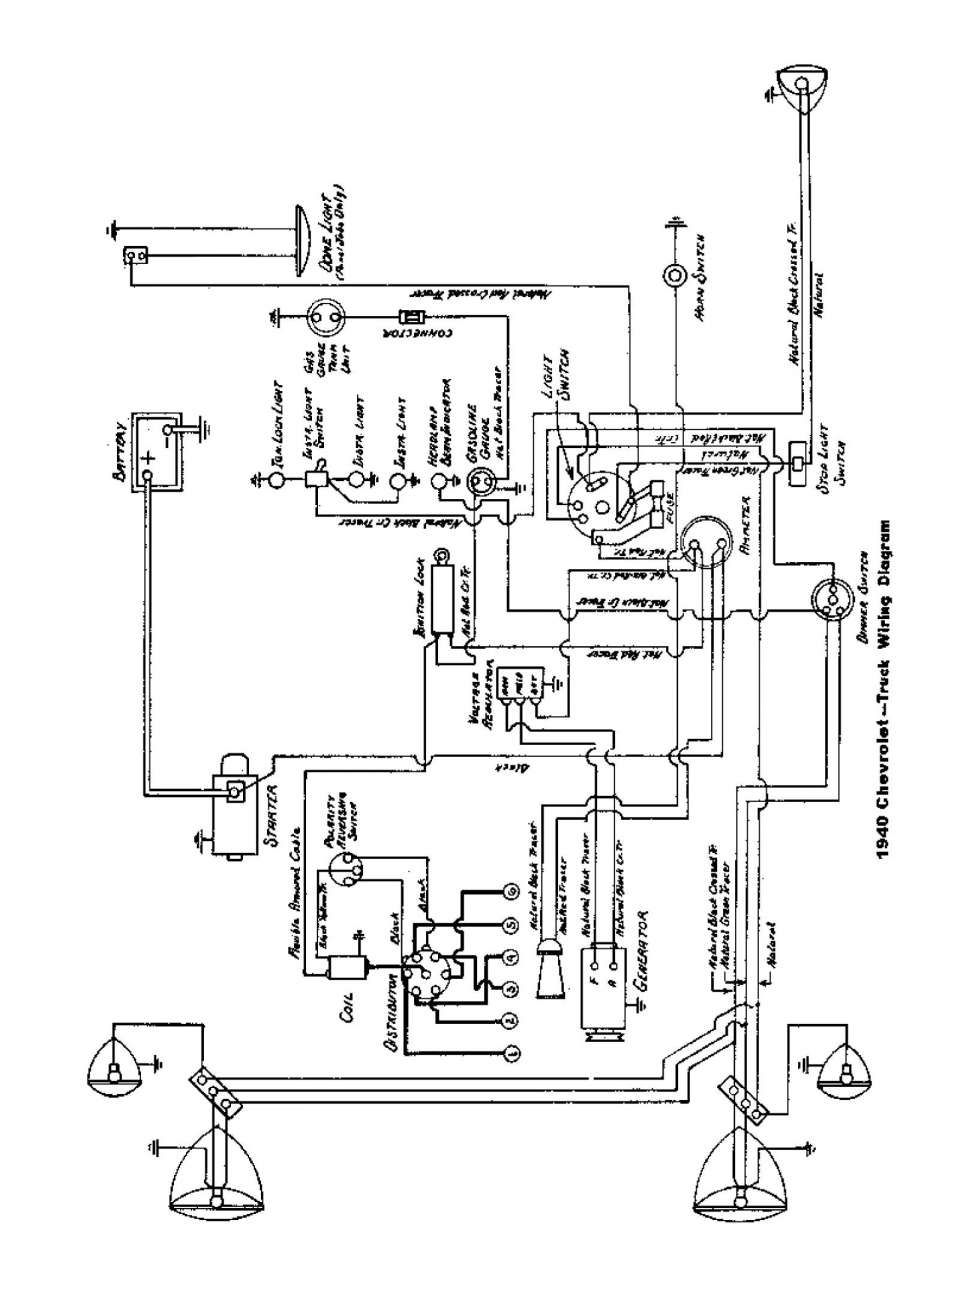 12  1956 Chevy Truck Wiring Diagram1956 Chevrolet Truck